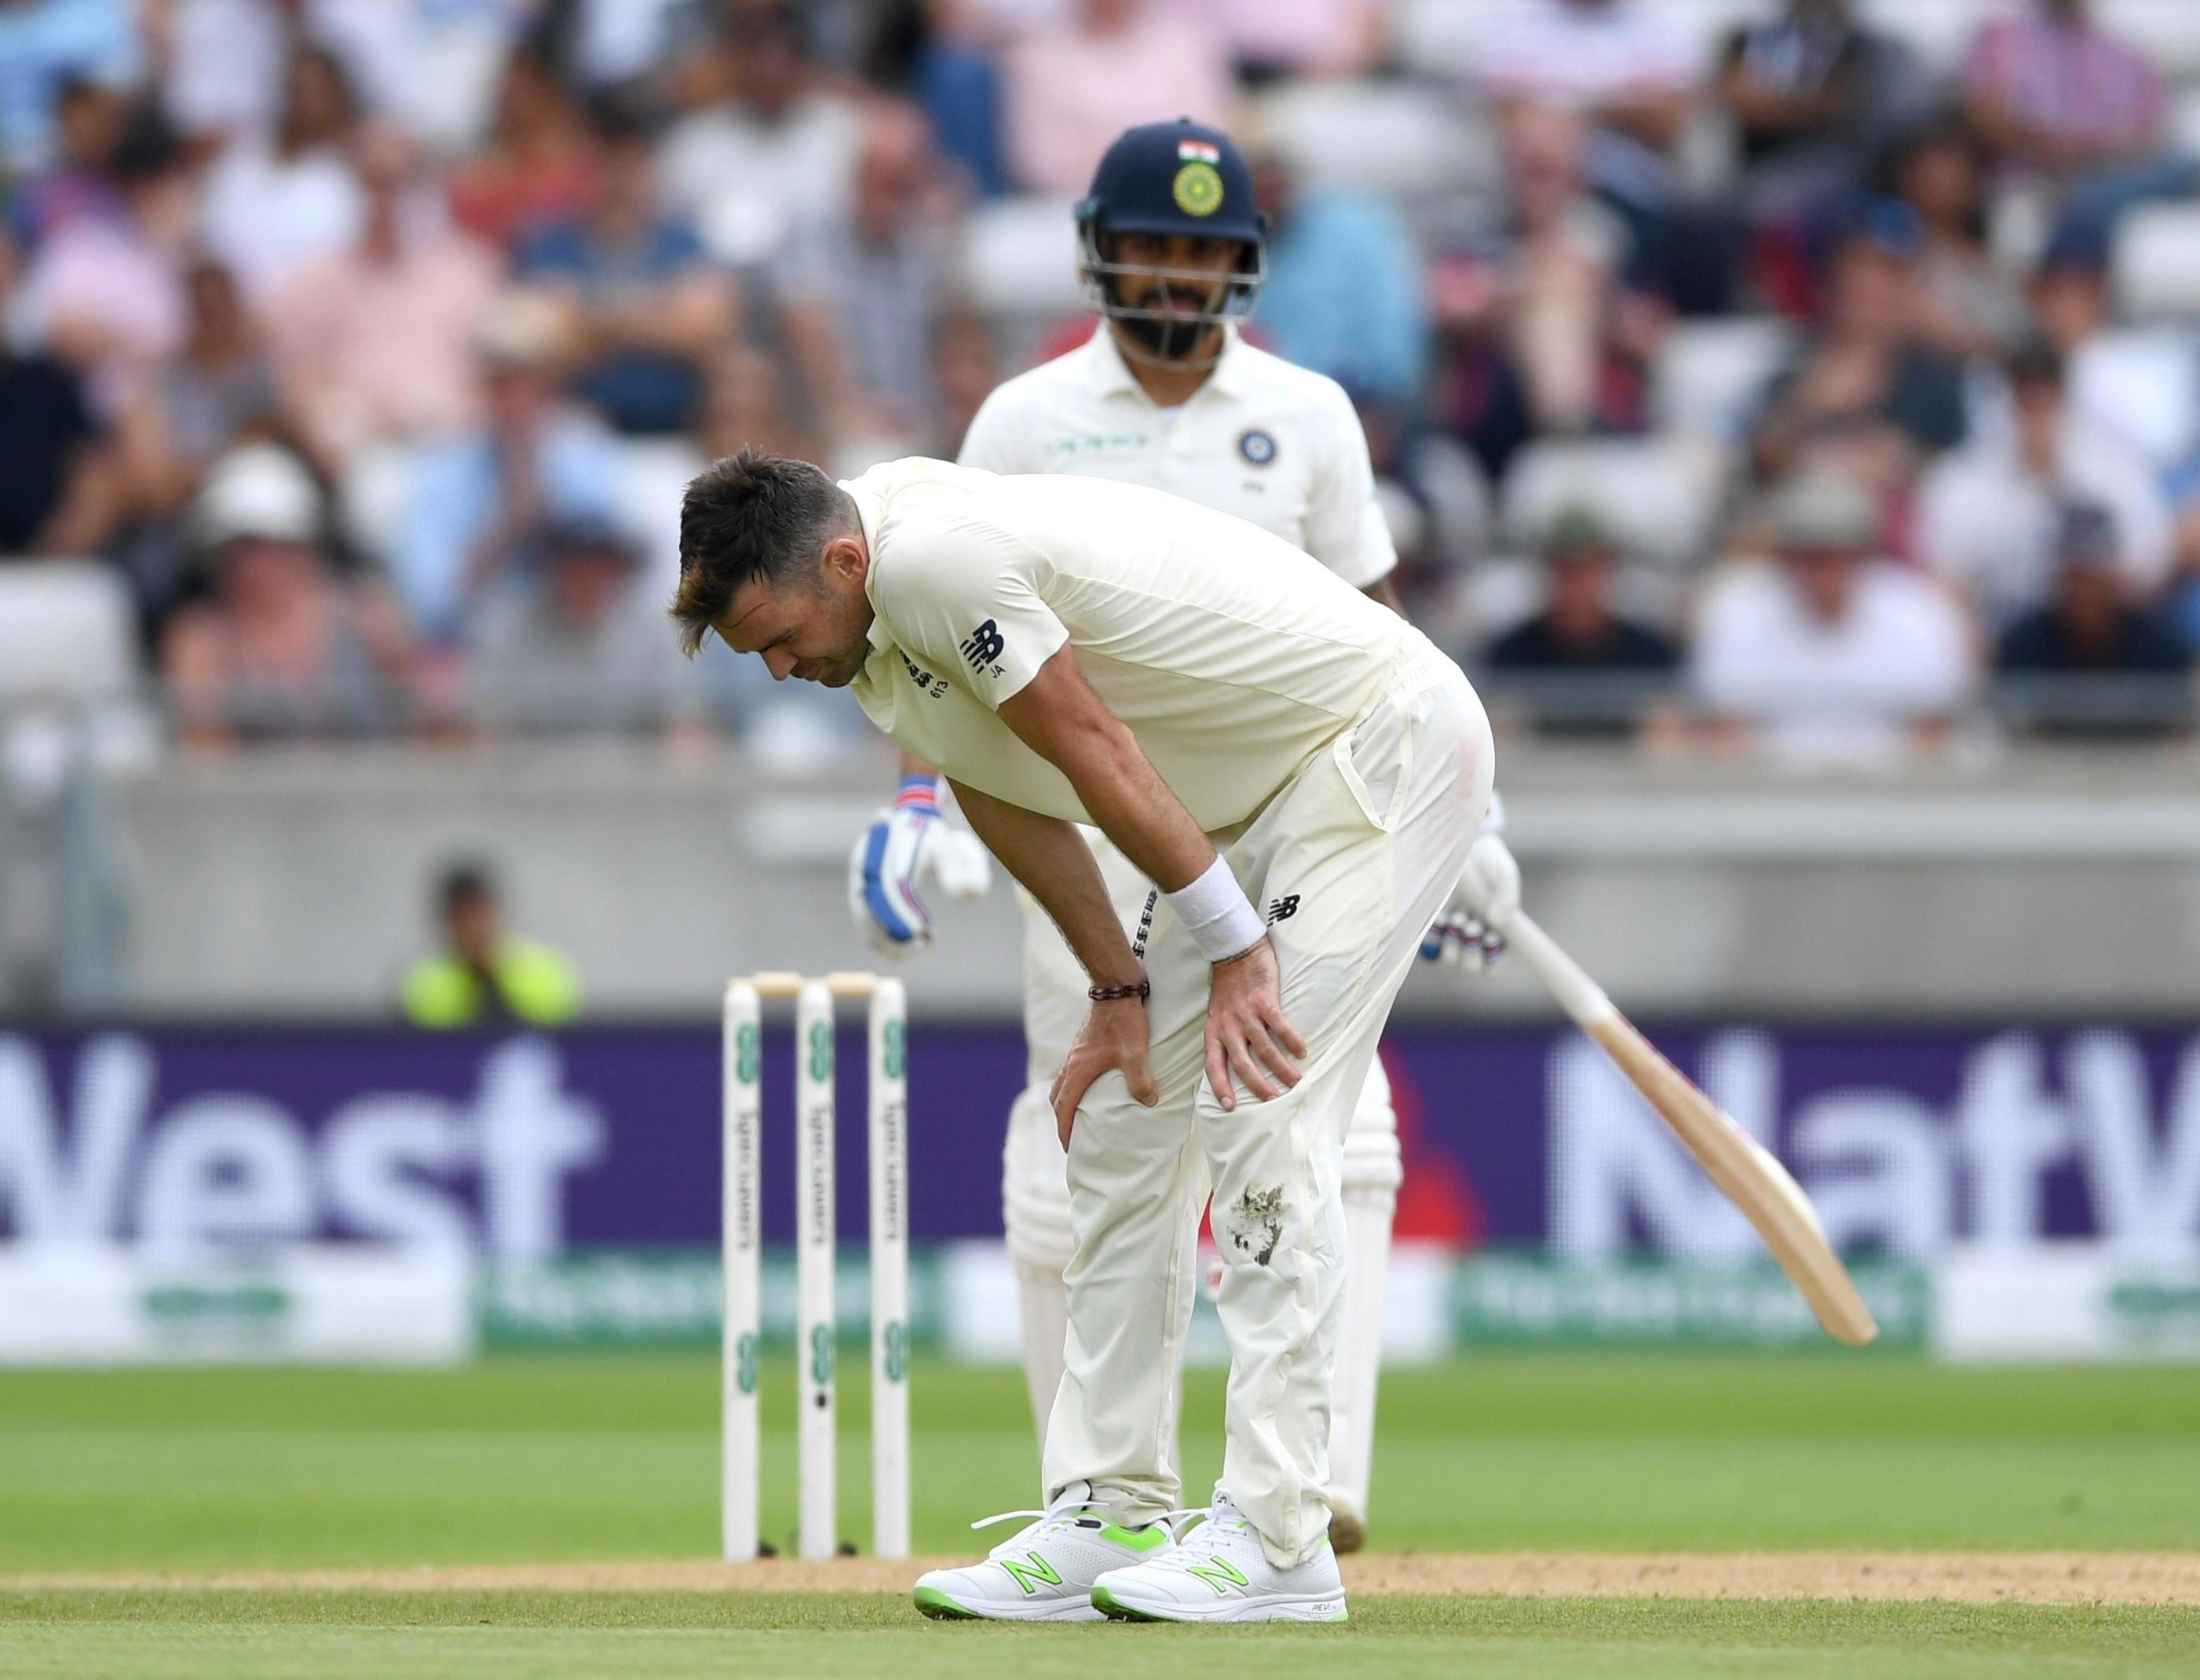 James Anderson shows the disappointment of seeing the prize wicket of Virat Kohli go begging